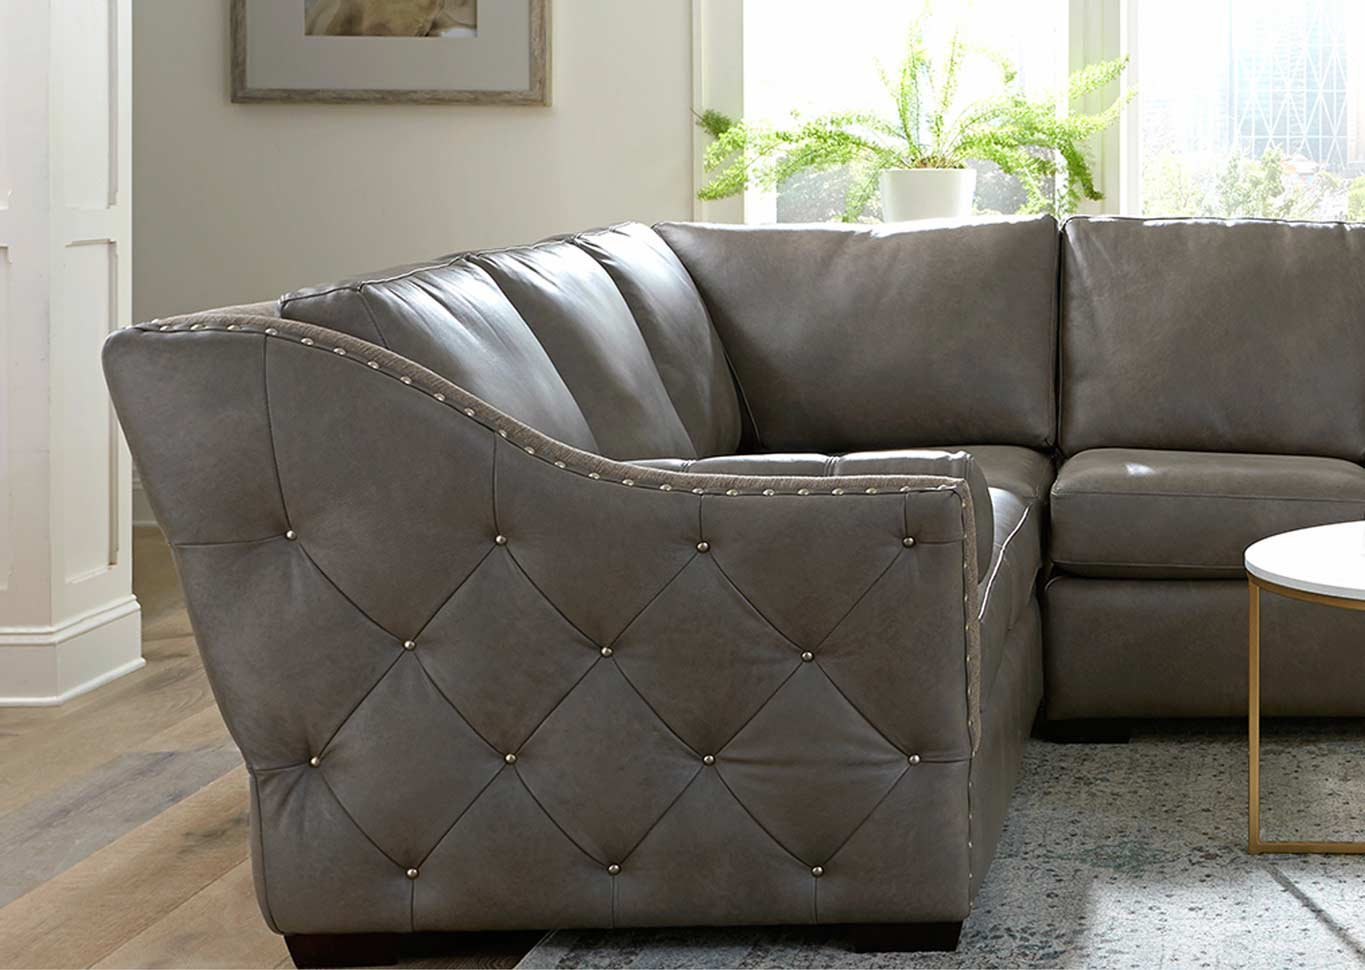 omnia brisbane sectional end view